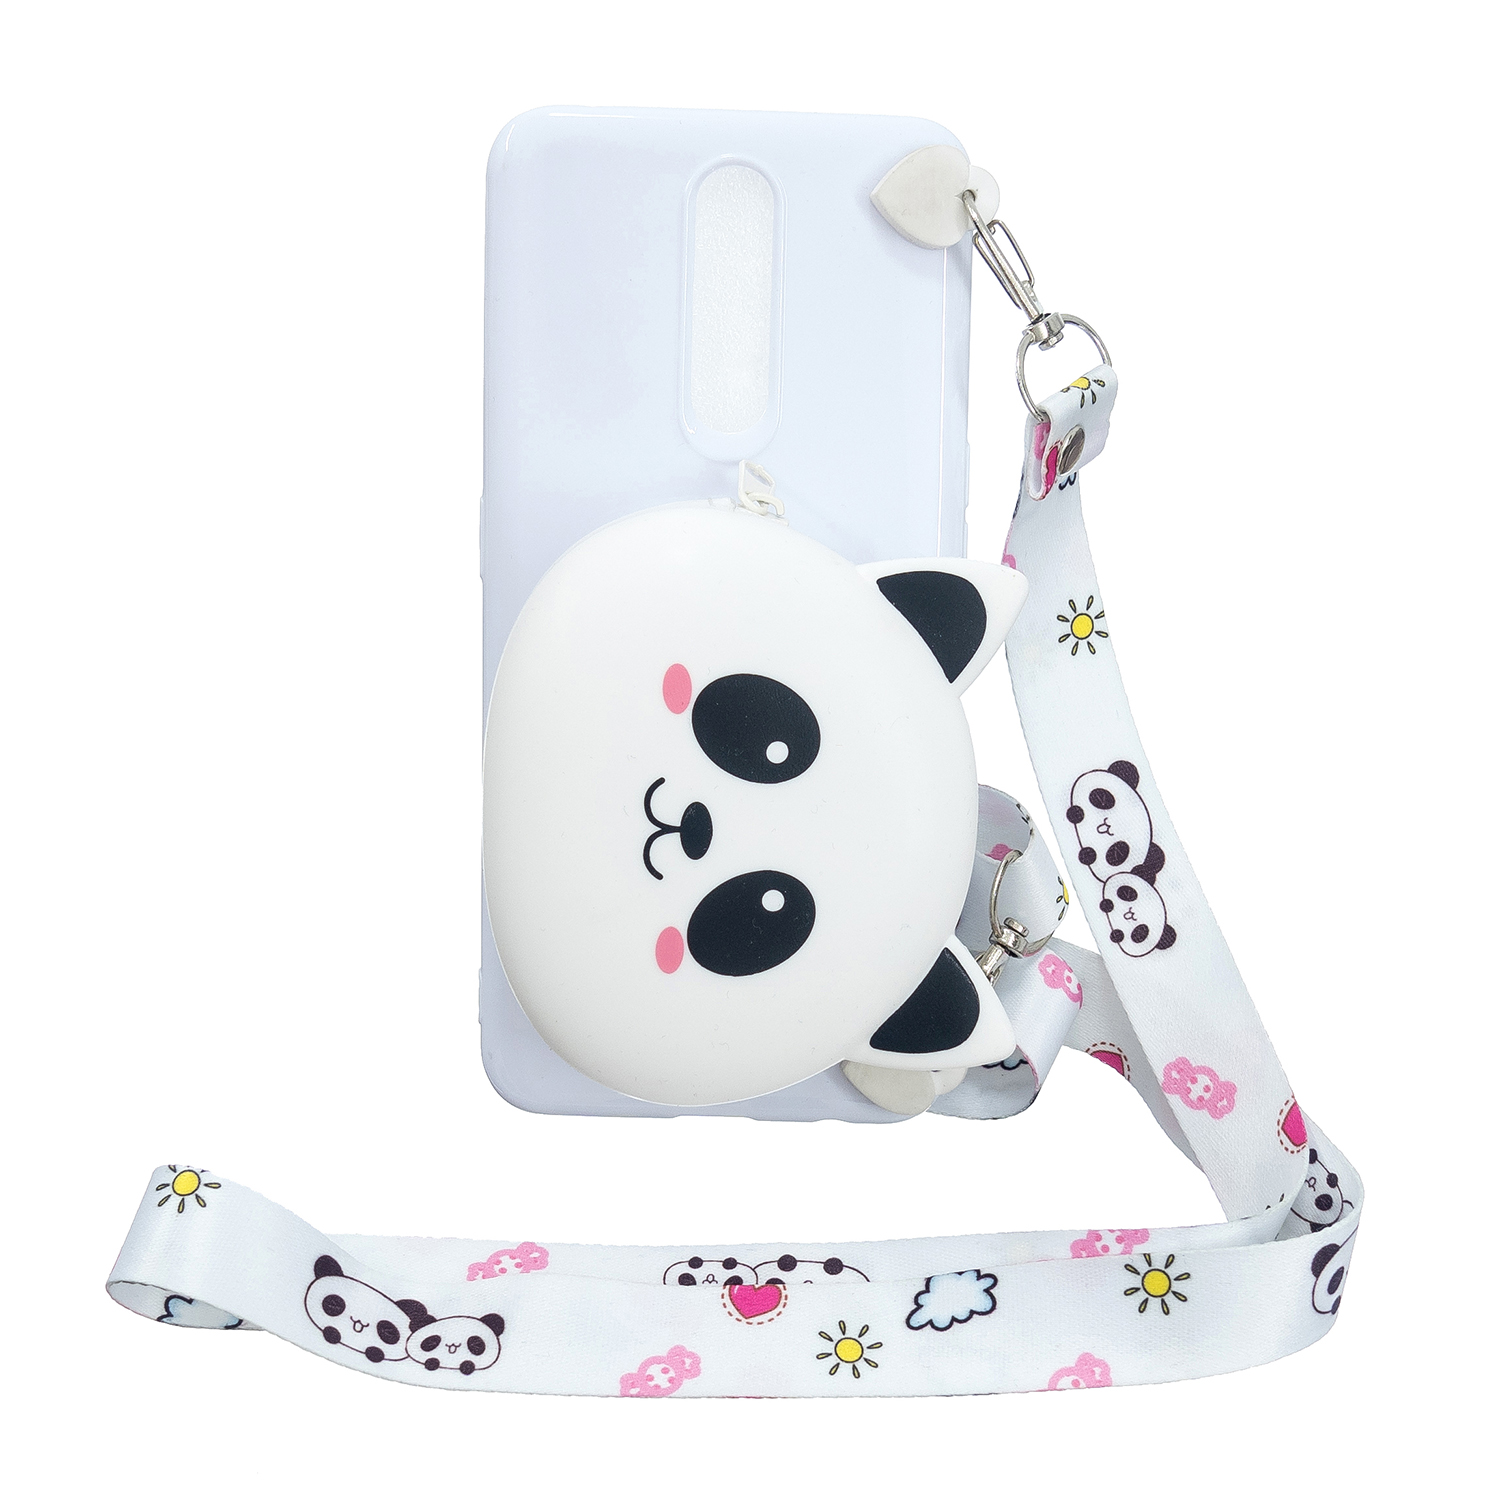 For OPPO F11/F11 Pro Cellphone Case Mobile Phone TPU Shell Shockproof Cover with Cartoon Cat Pig Panda Coin Purse Lovely Shoulder Starp  White